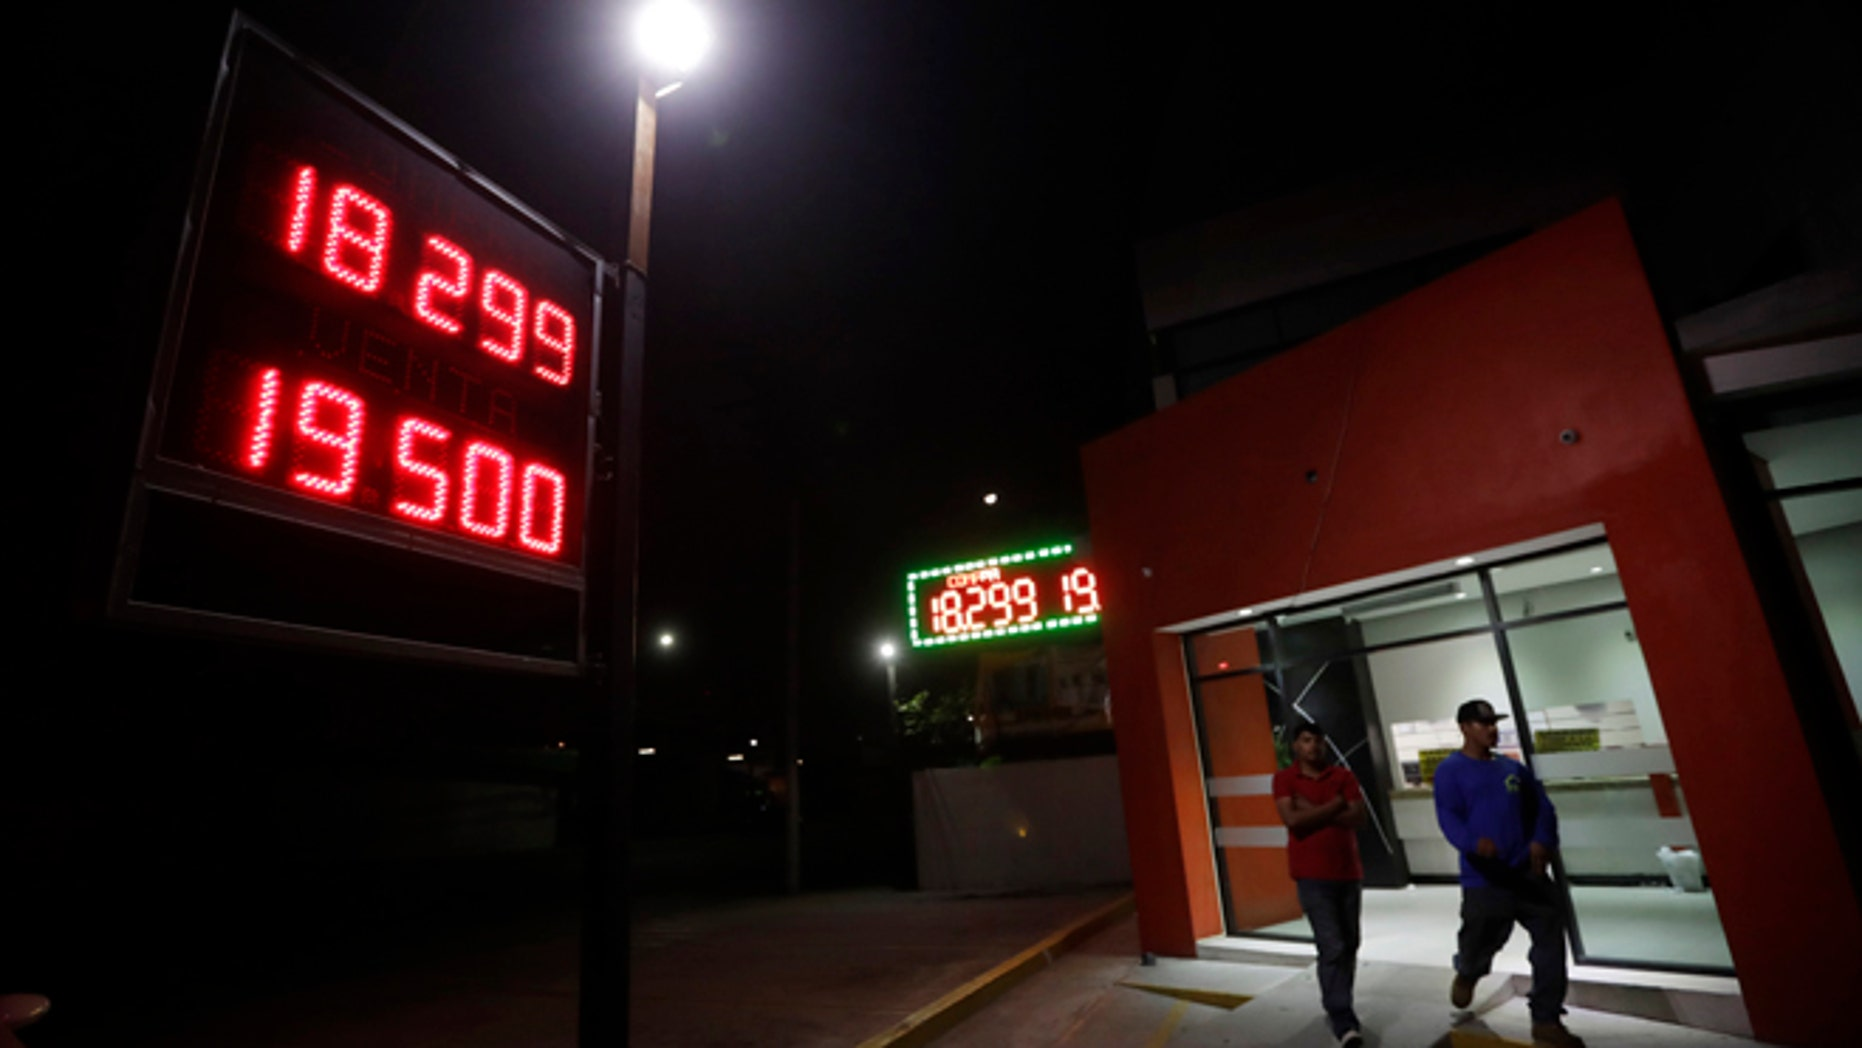 A currency exchange business displays rates of the Mexican peso Tuesday, Nov. 8, 2016, in Tijuana, Mexico.